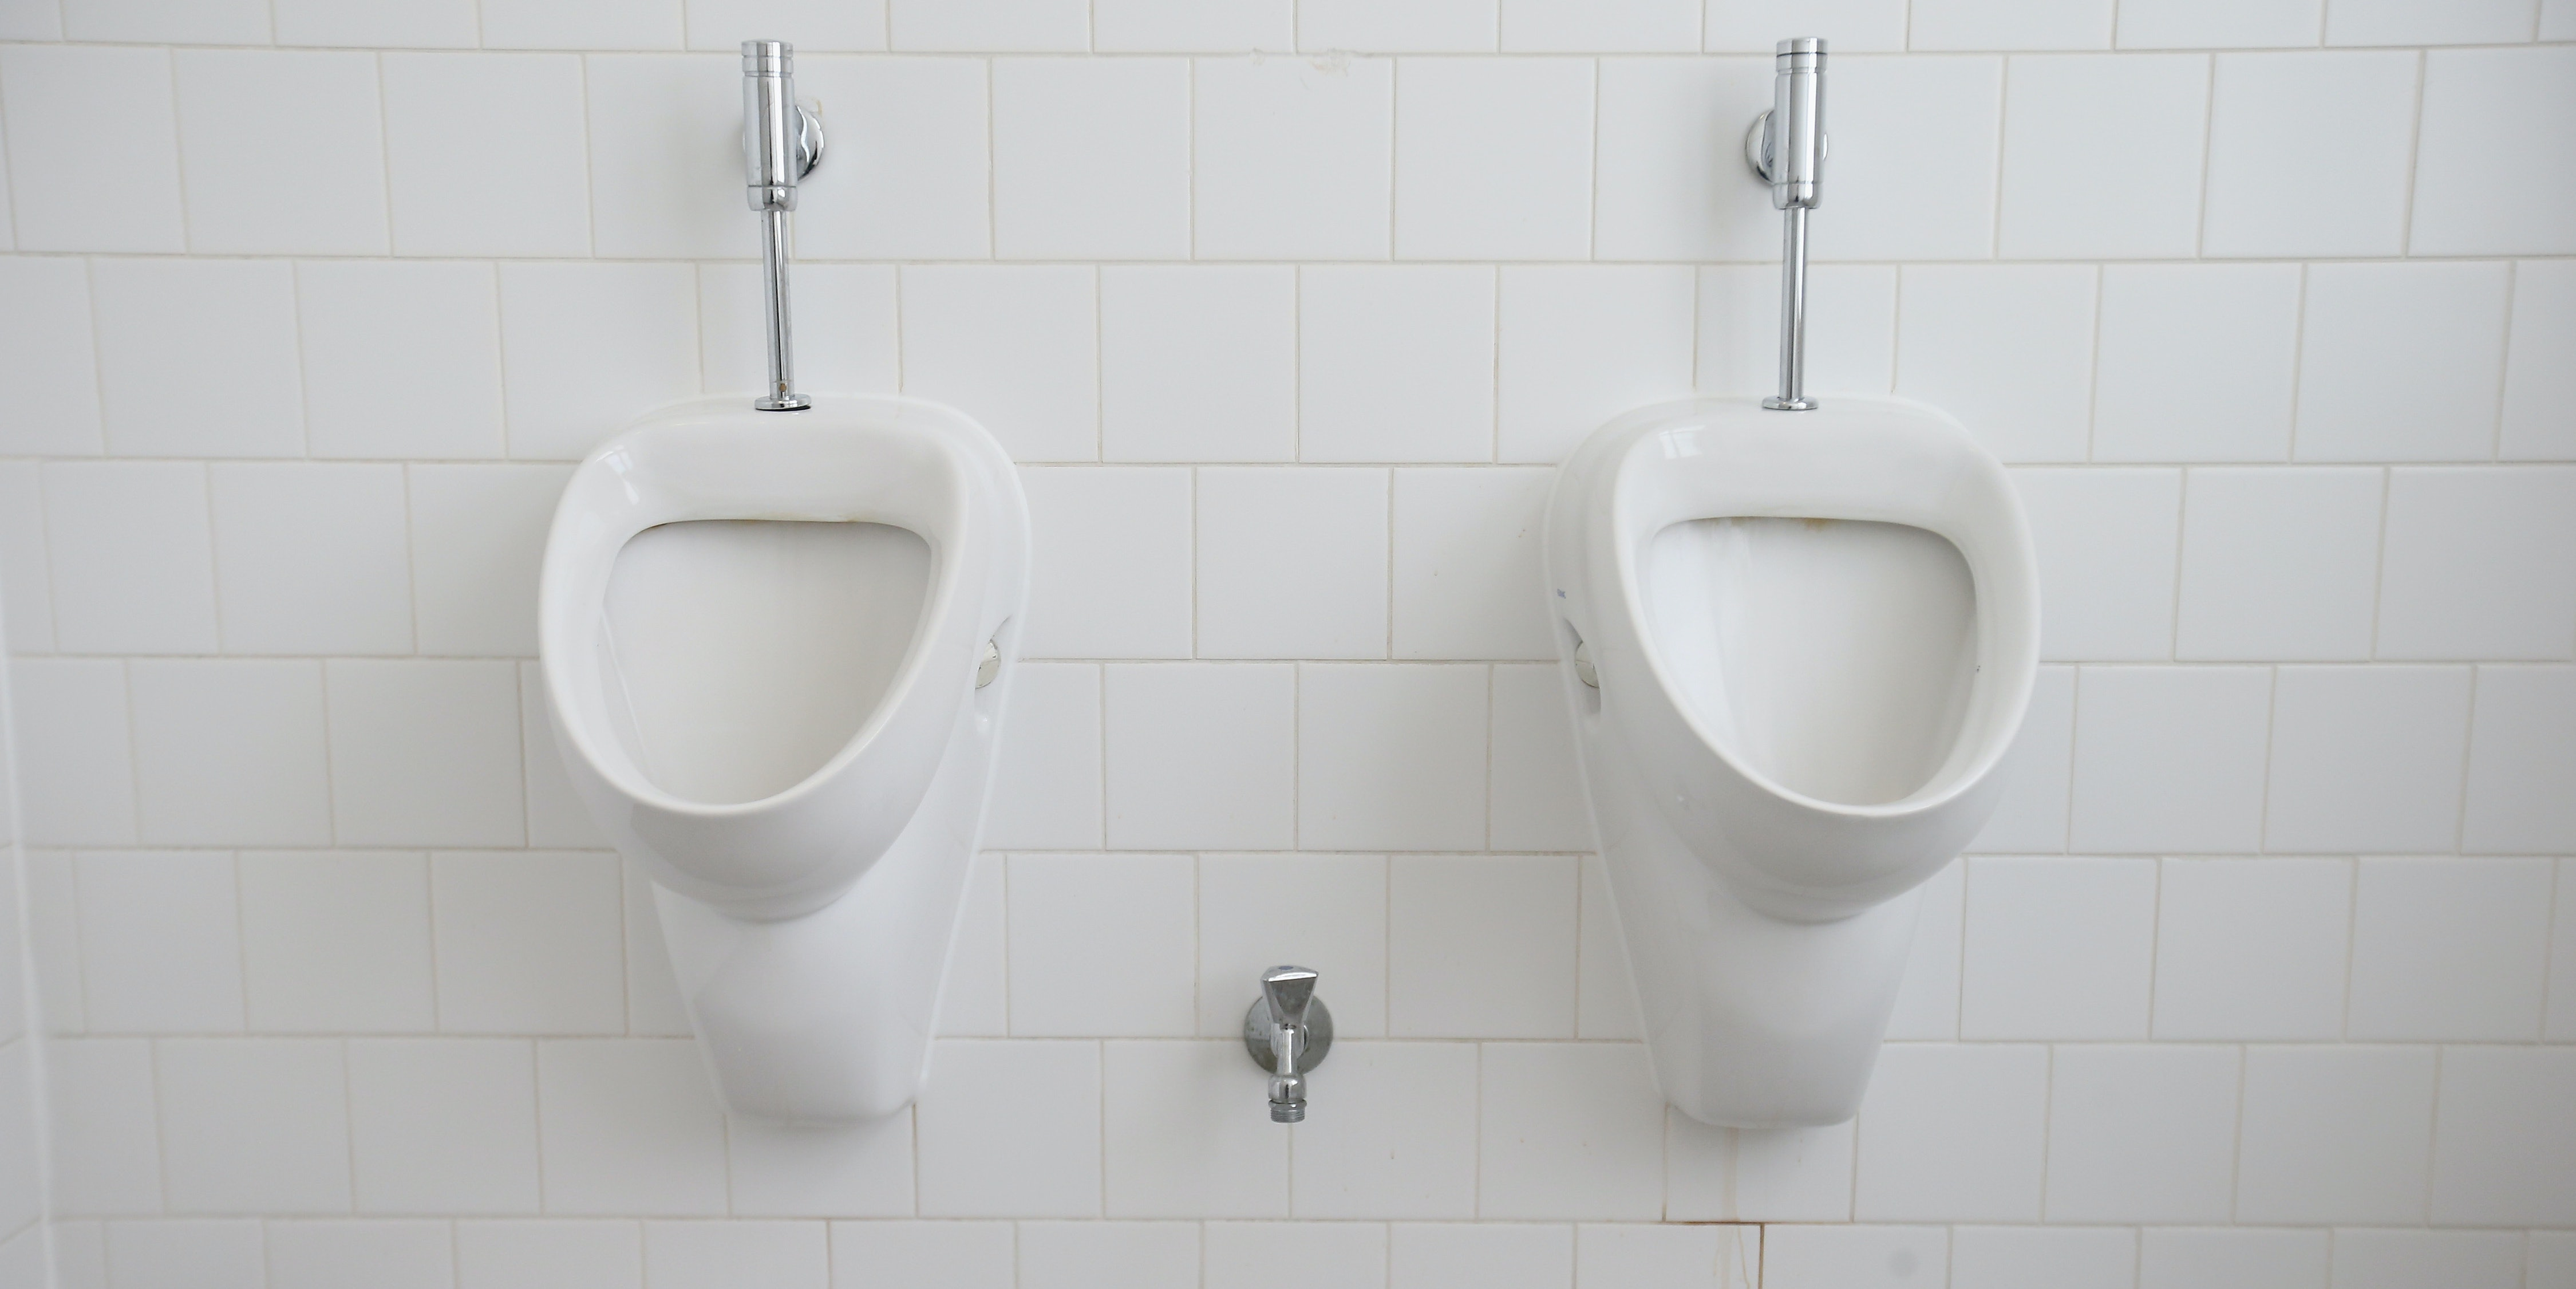 A pair of boring, non hands-free penis-washing urinals.